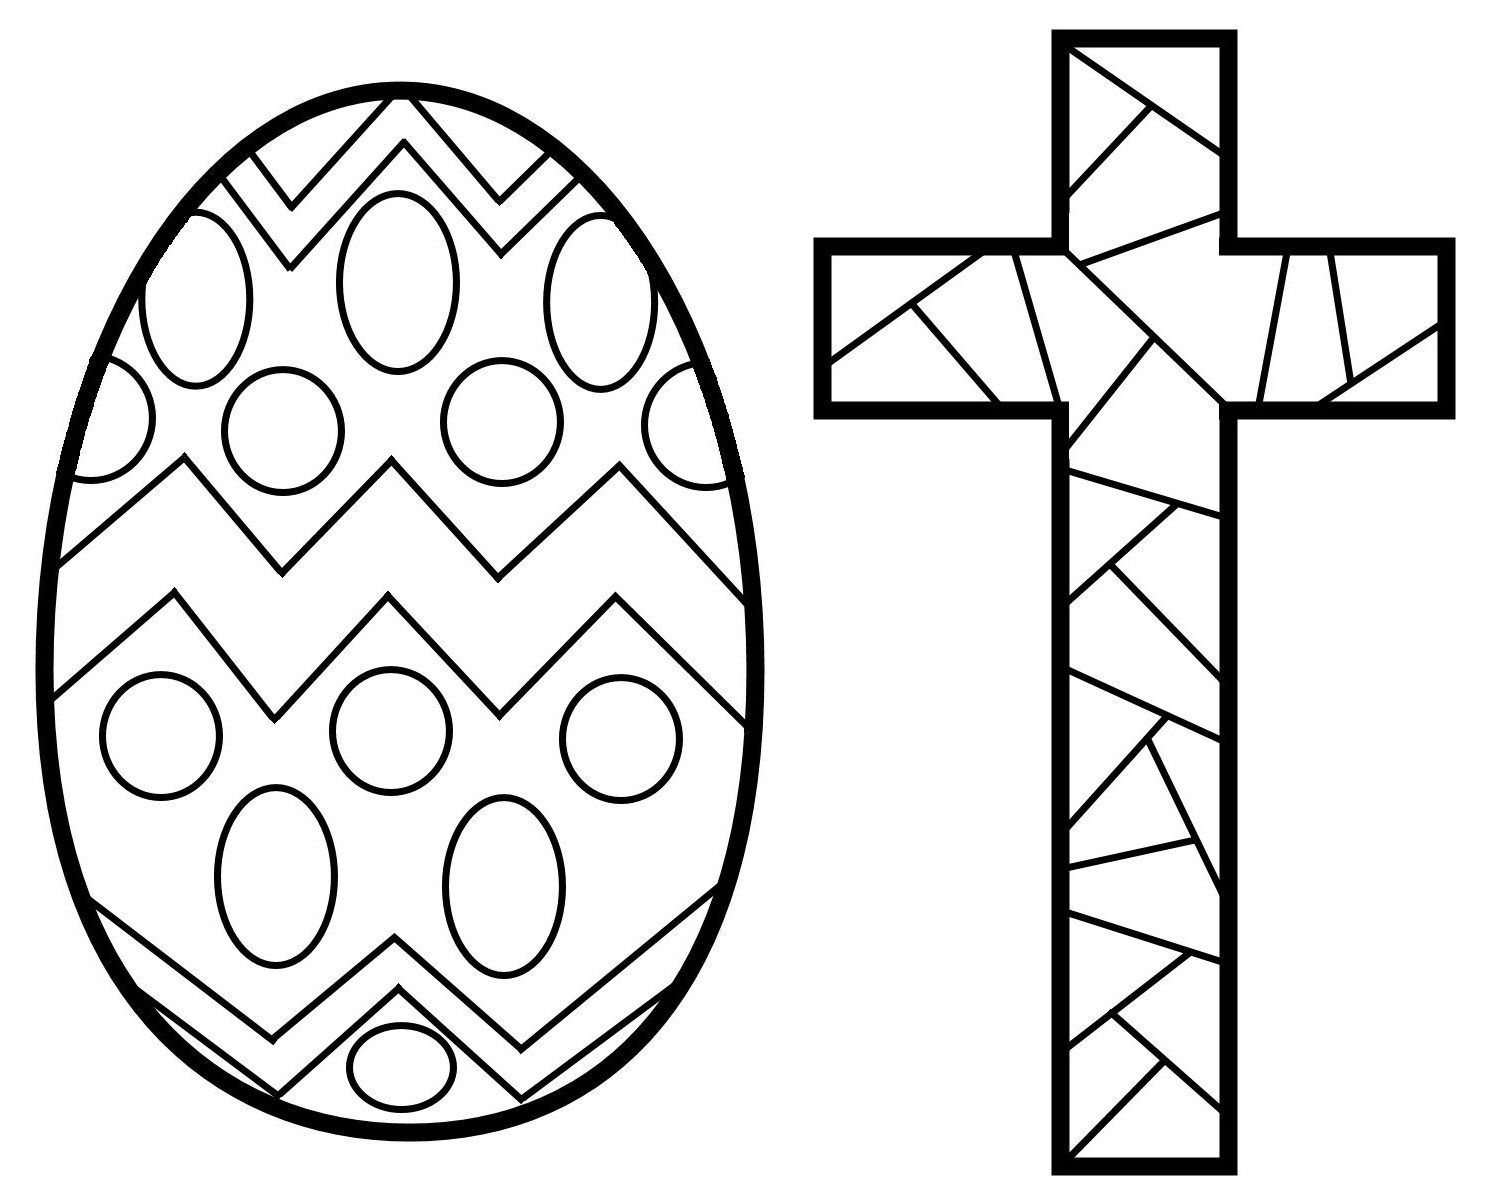 Free Printable Stained Glass Patterns Step 2 Stain Glass Cross Cross Coloring Page Making Stained Glass